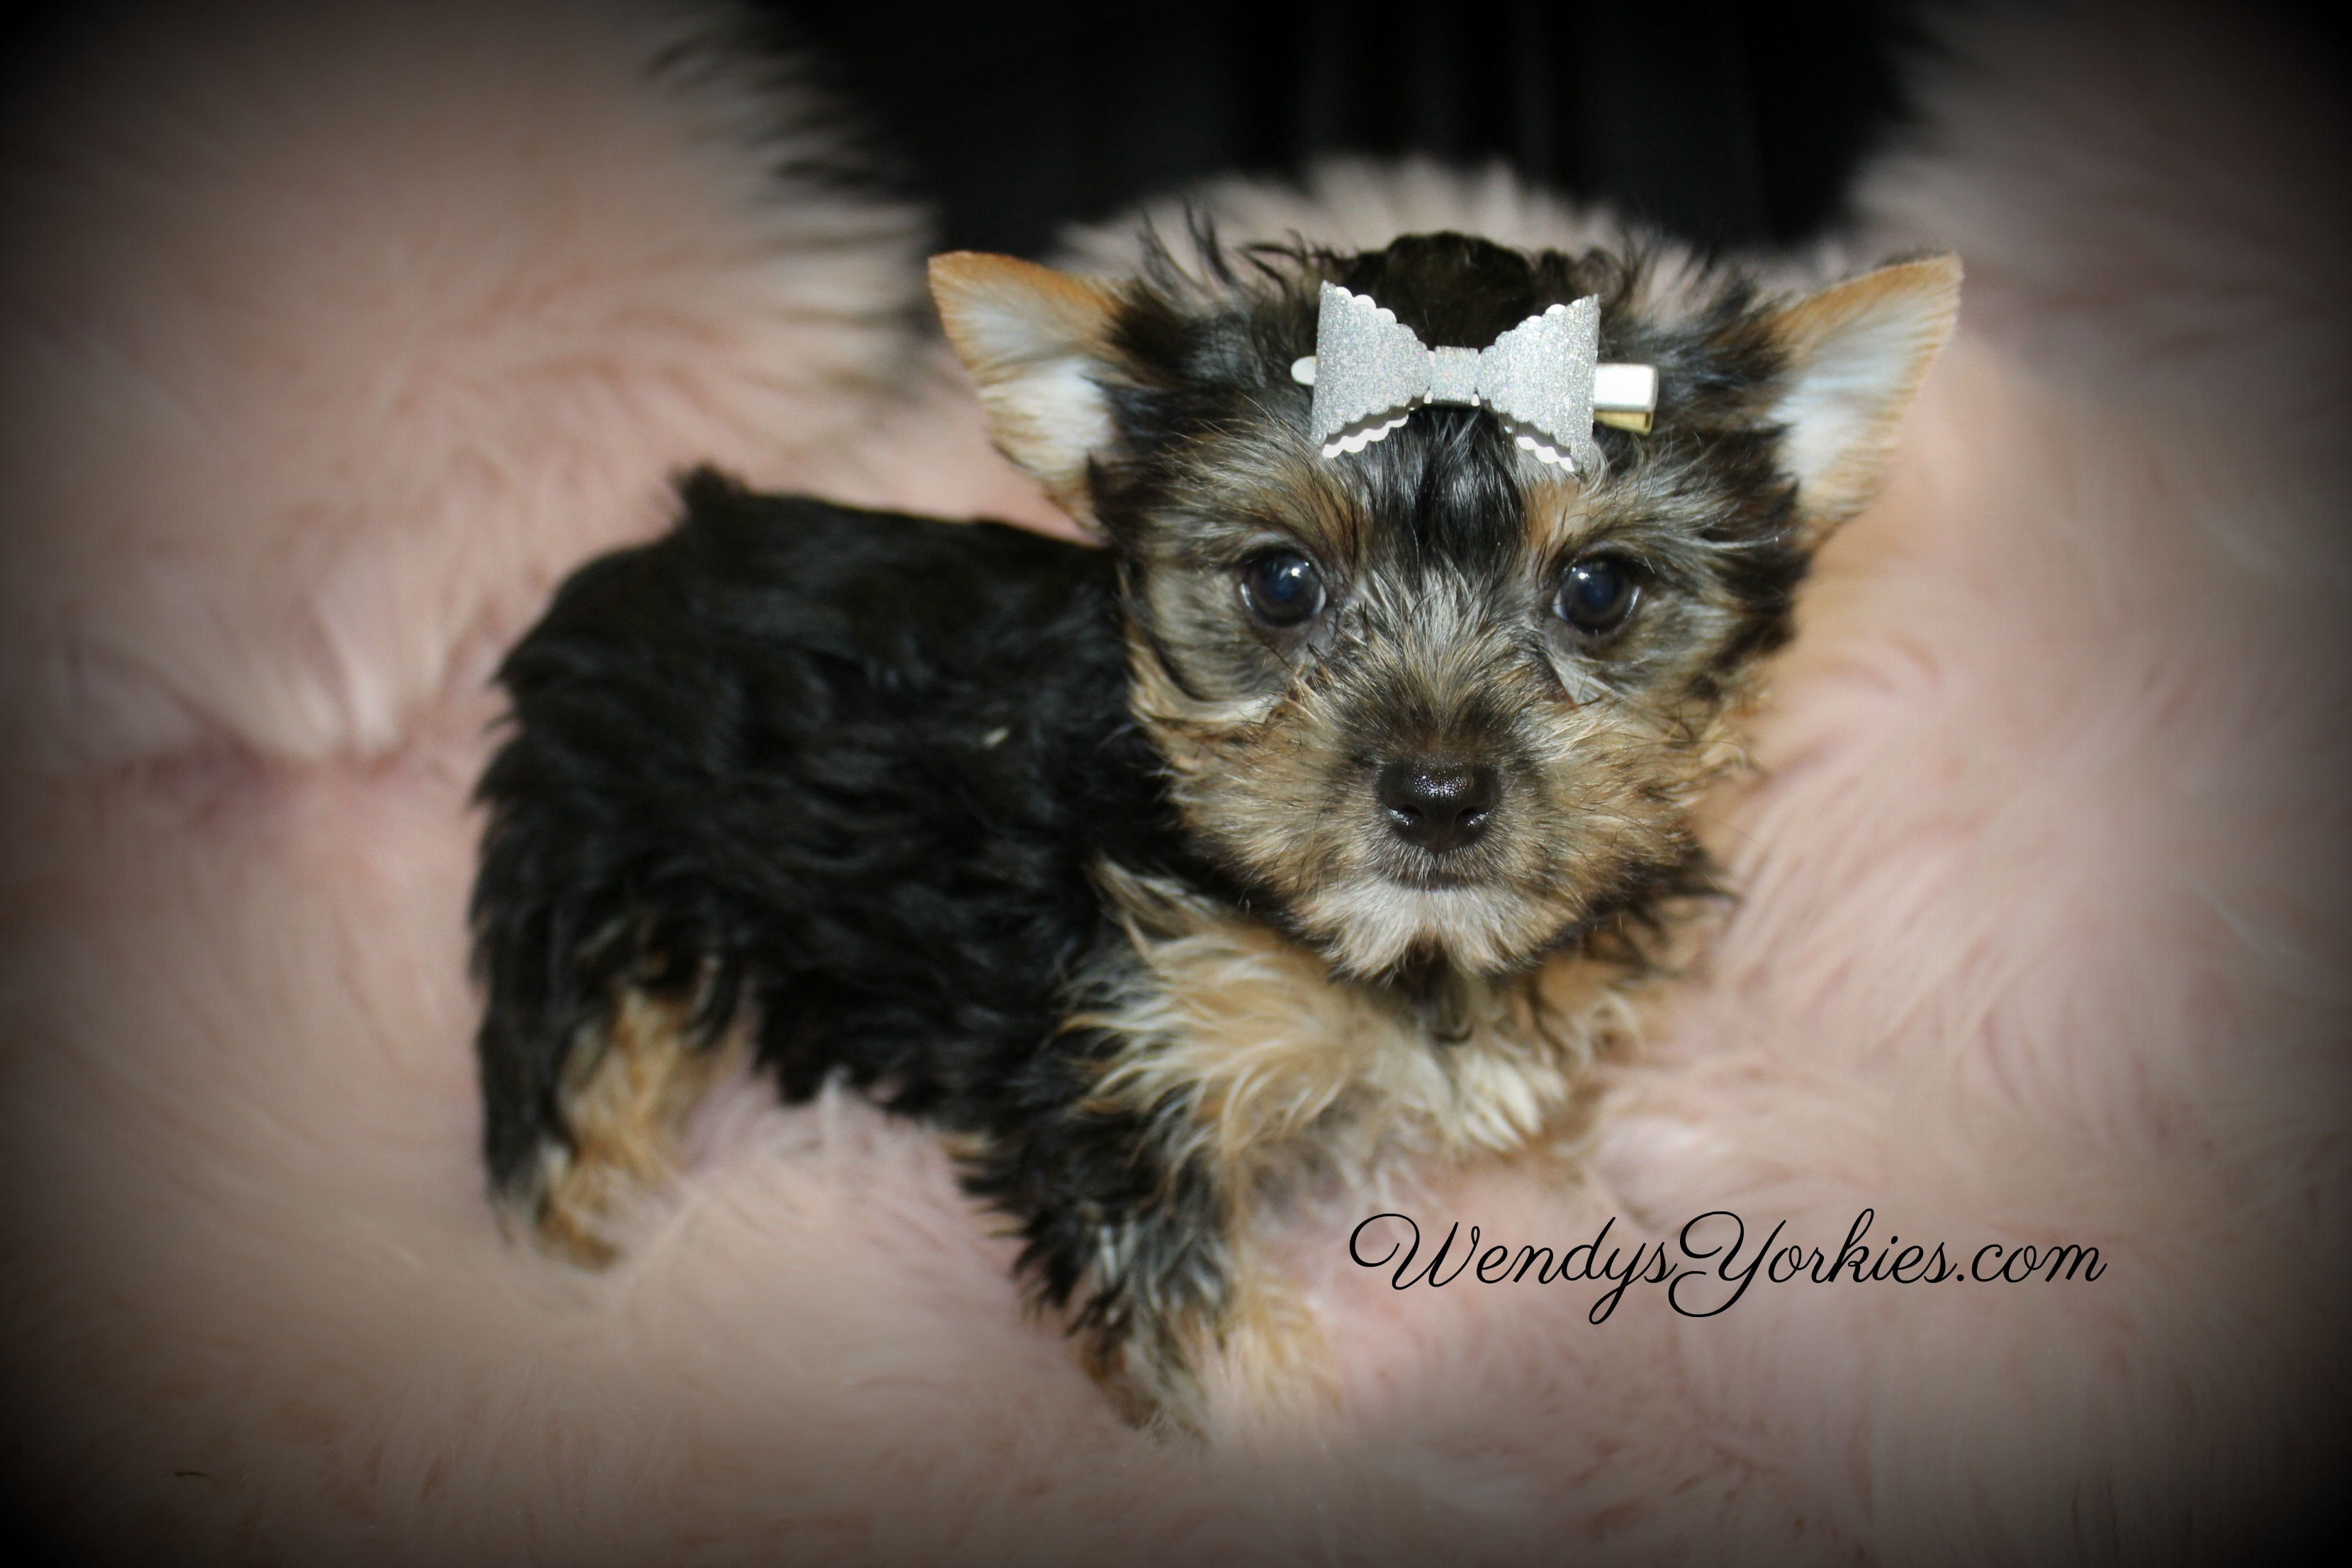 Yorkie puppy for sale, WendysYorkies.com, Loulou f3